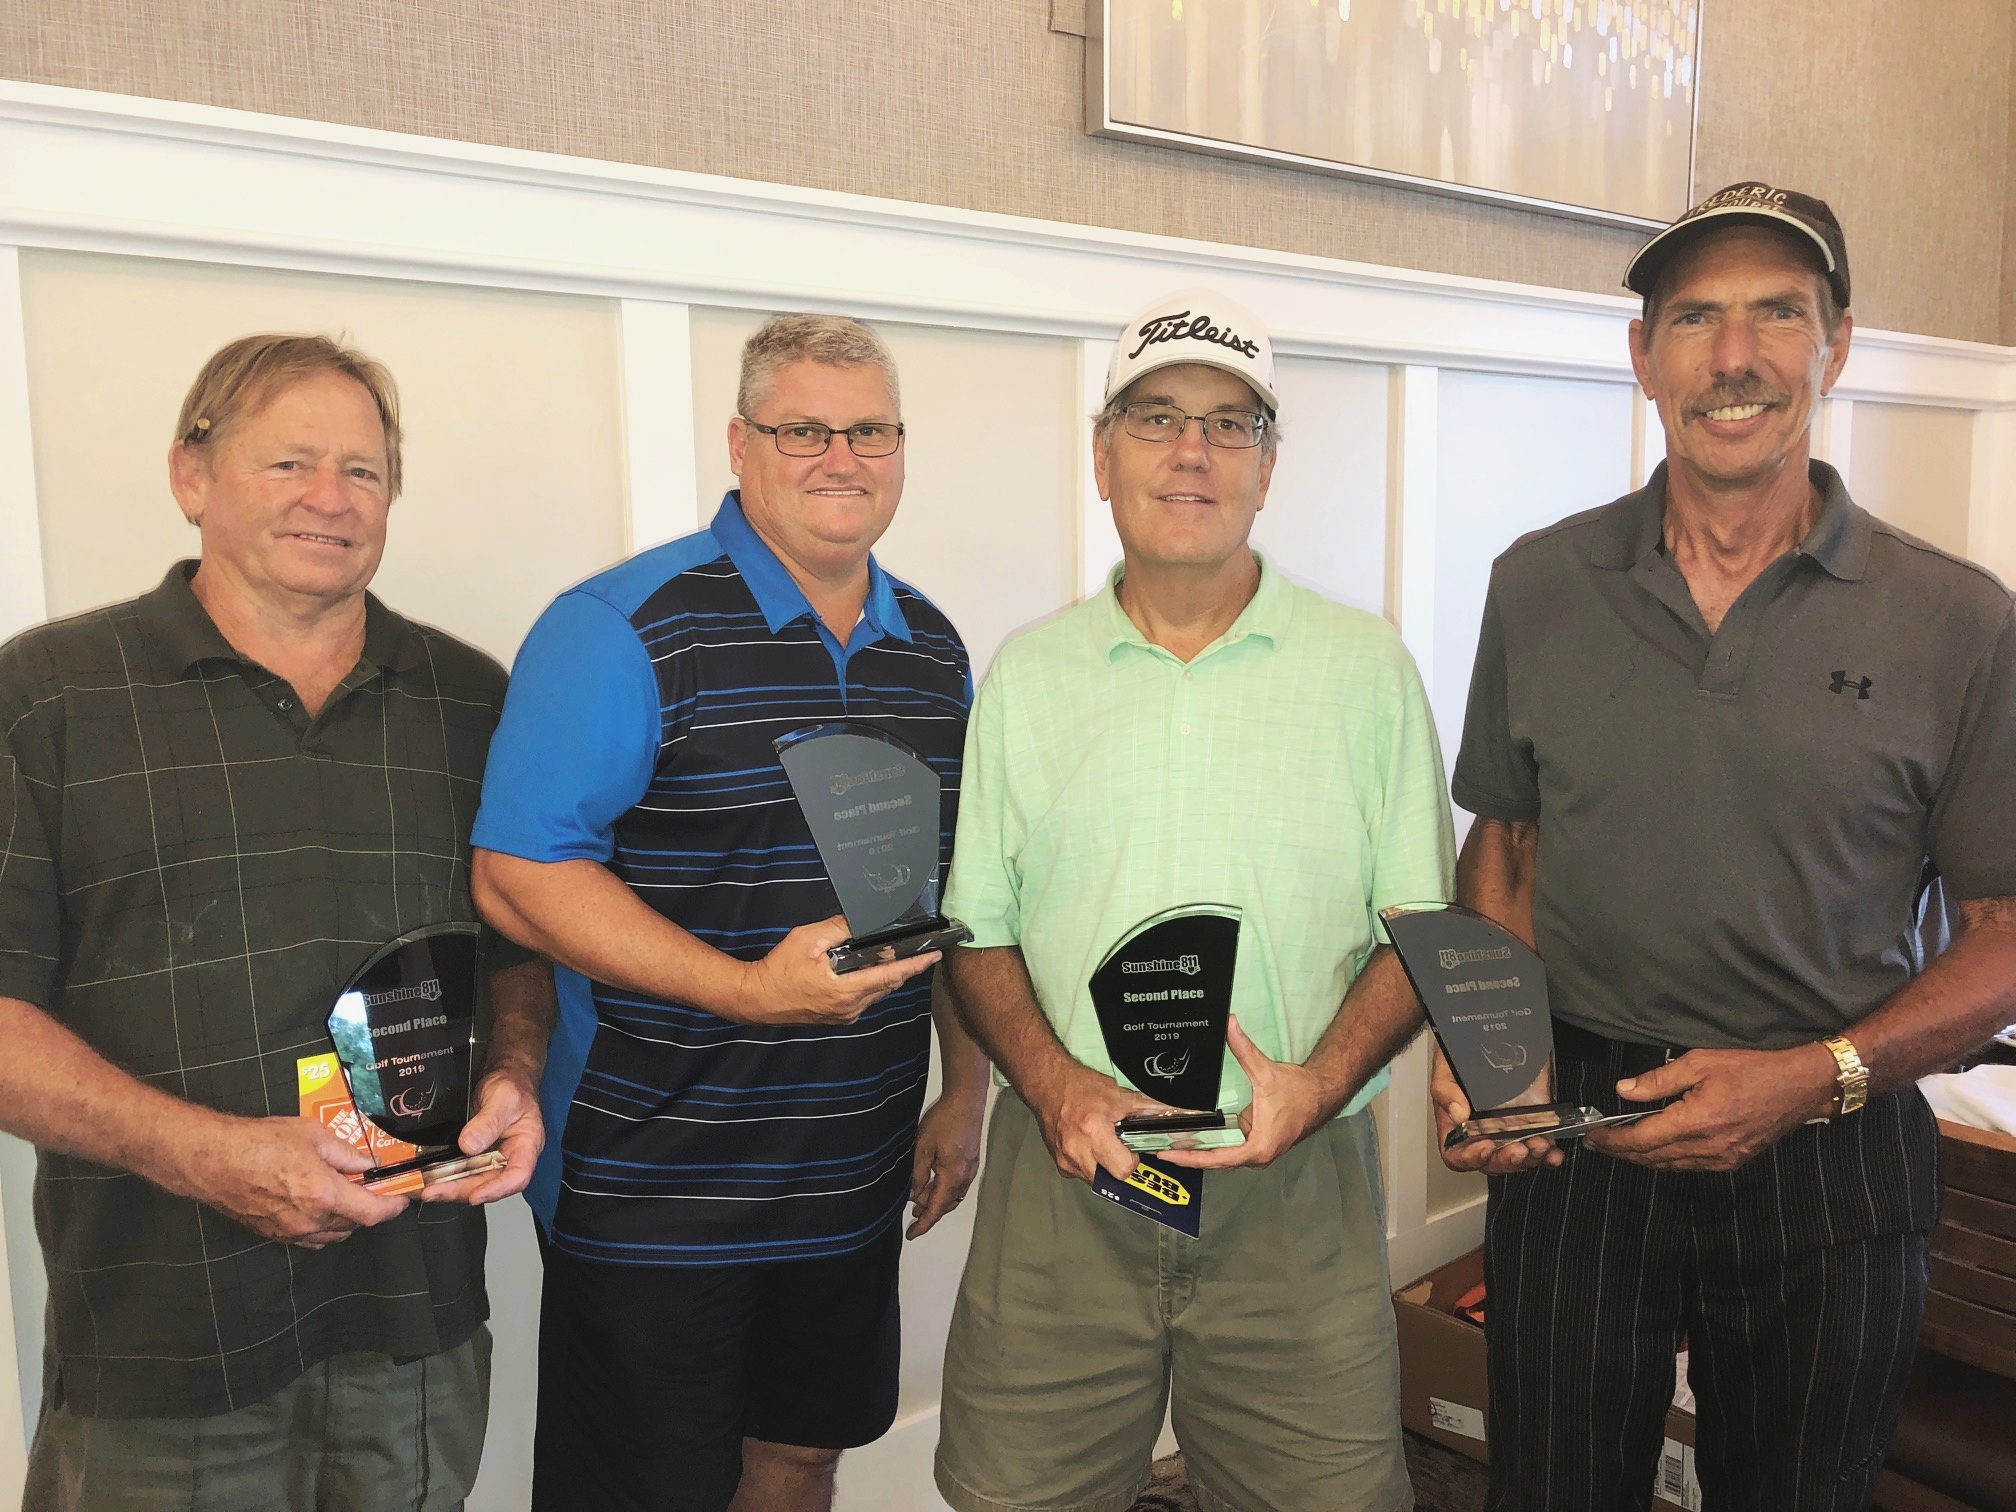 SECOND PLACE: Stan Johnson, Rick Glass, Bill Brown and Mike Bohn.